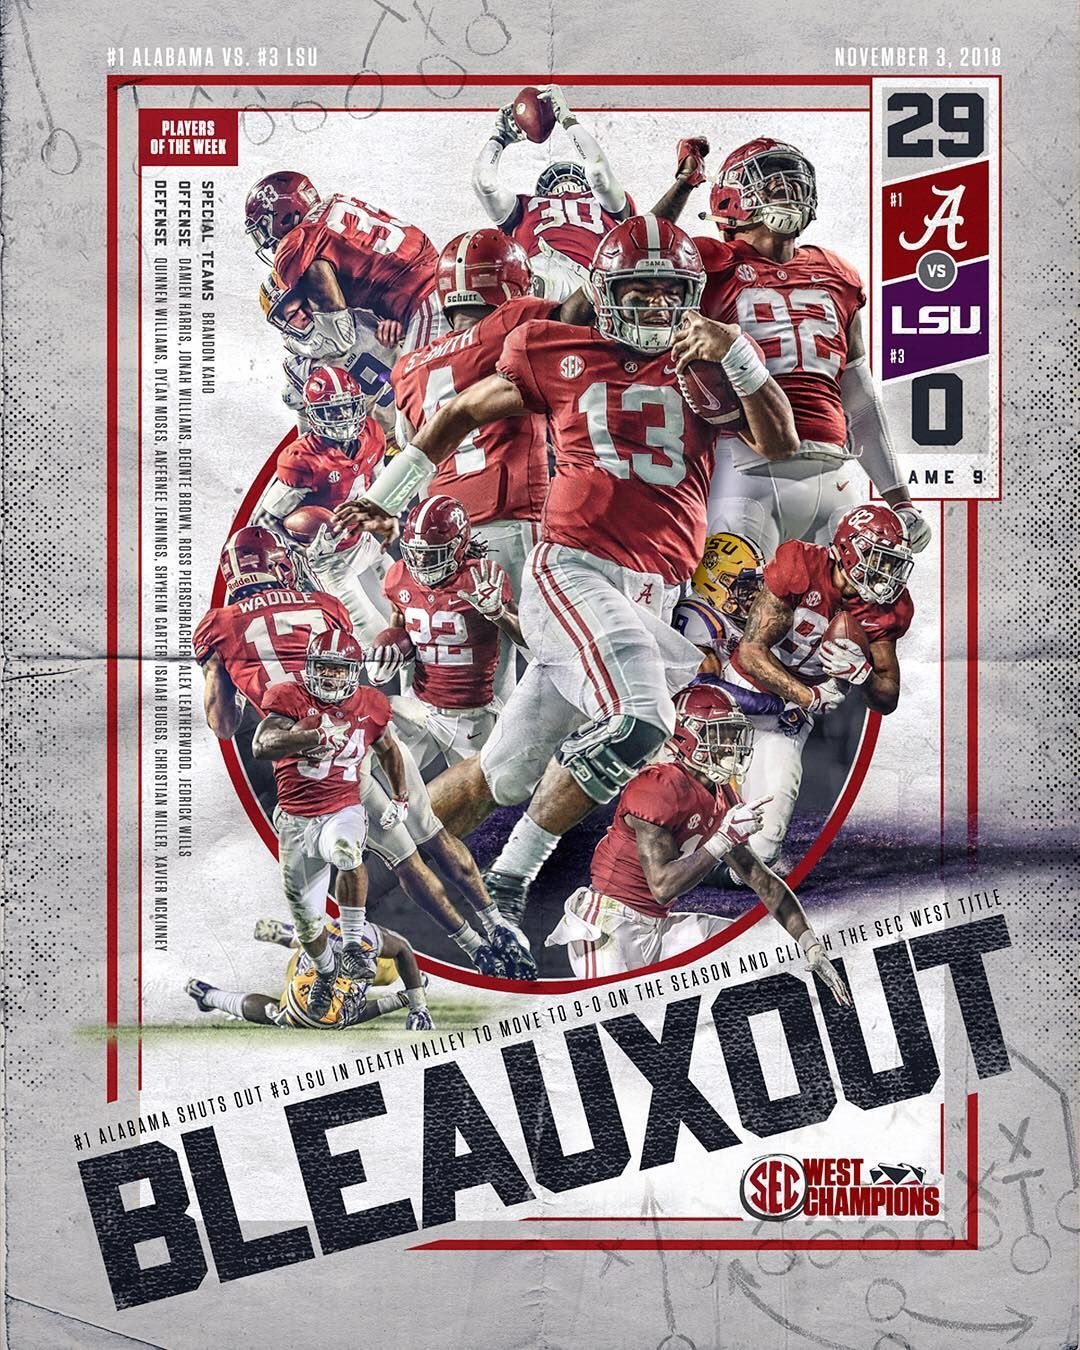 Game 9 Win Poster 🌊29 🐅0 OutworkYesterday RollTide